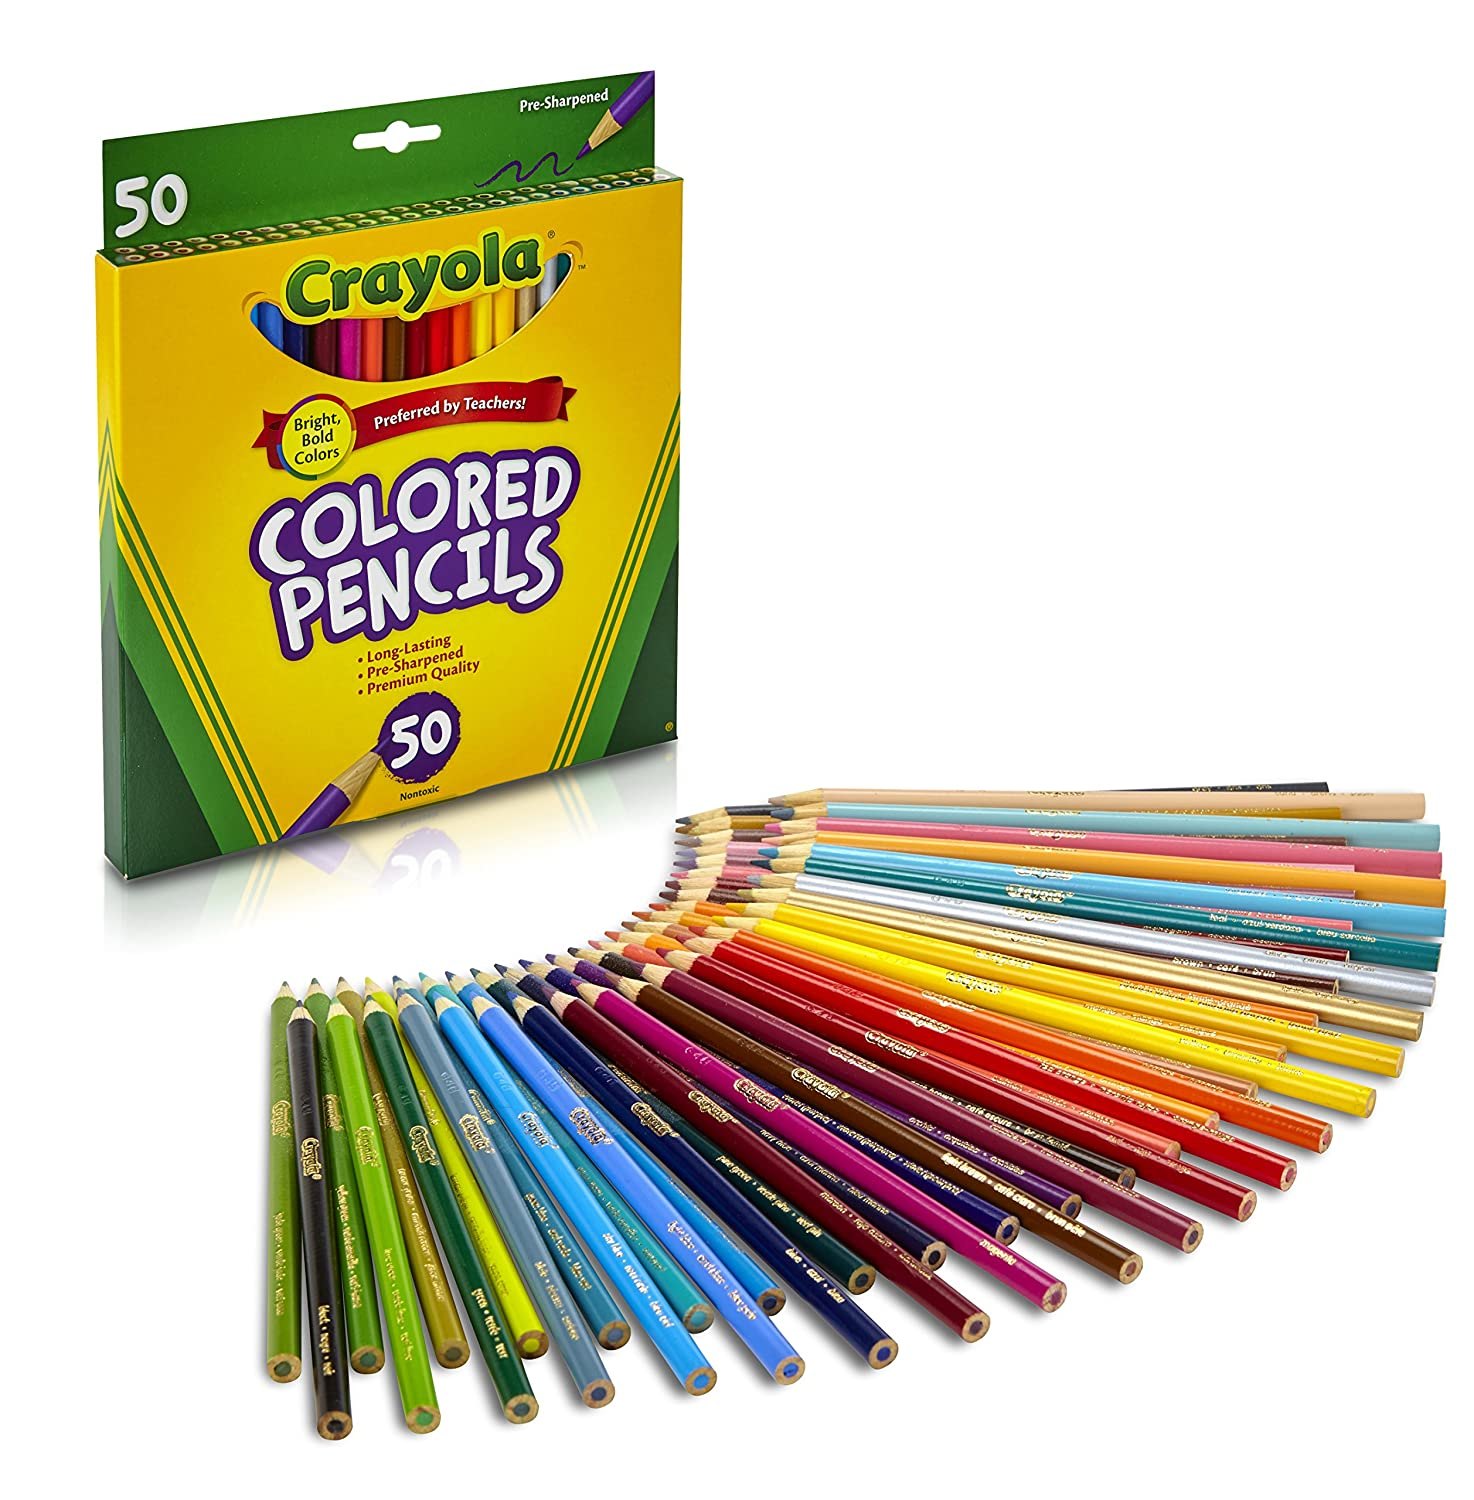 Amazon.com: Crayola Colored Pencils, 50 Count, Adult Coloring ...